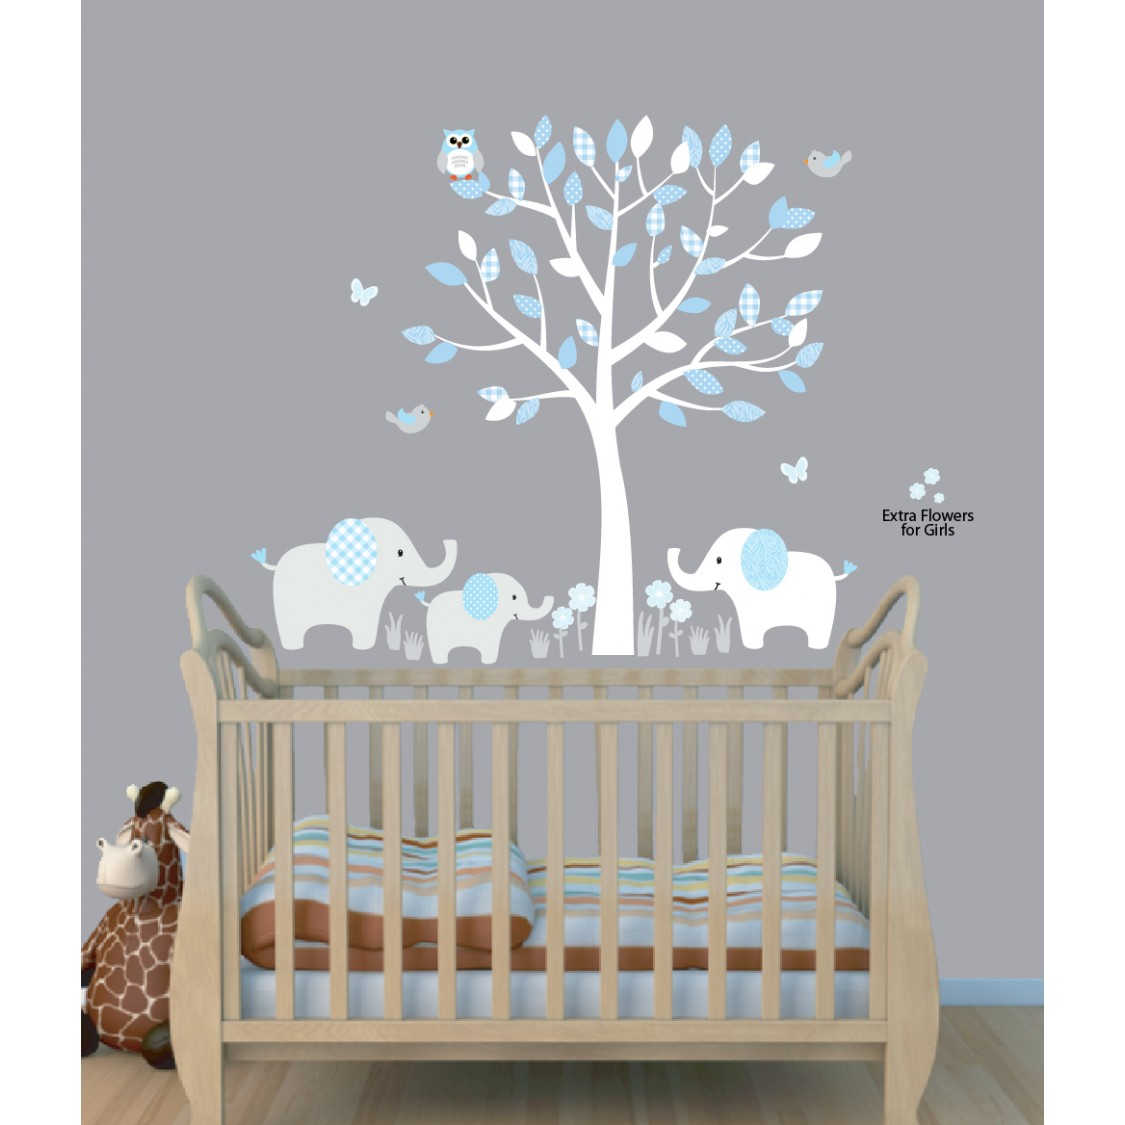 Use elephant wall decals and elephant stickers to create an blue nursery jungle wall decals with elephant wall decal for boys rooms amipublicfo Gallery